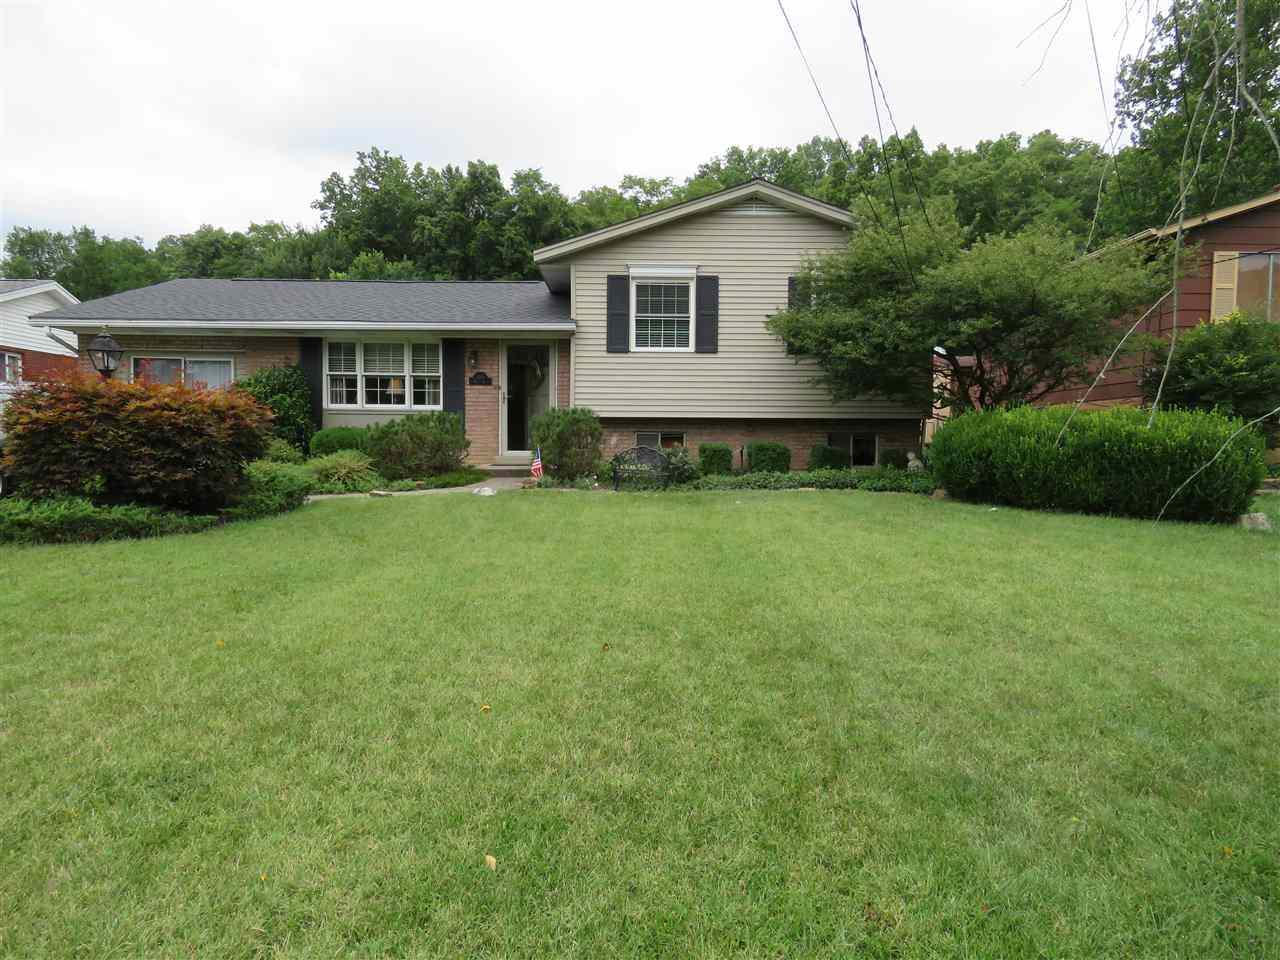 Photo 1 for 109 Moock Rd Southgate, KY 41071